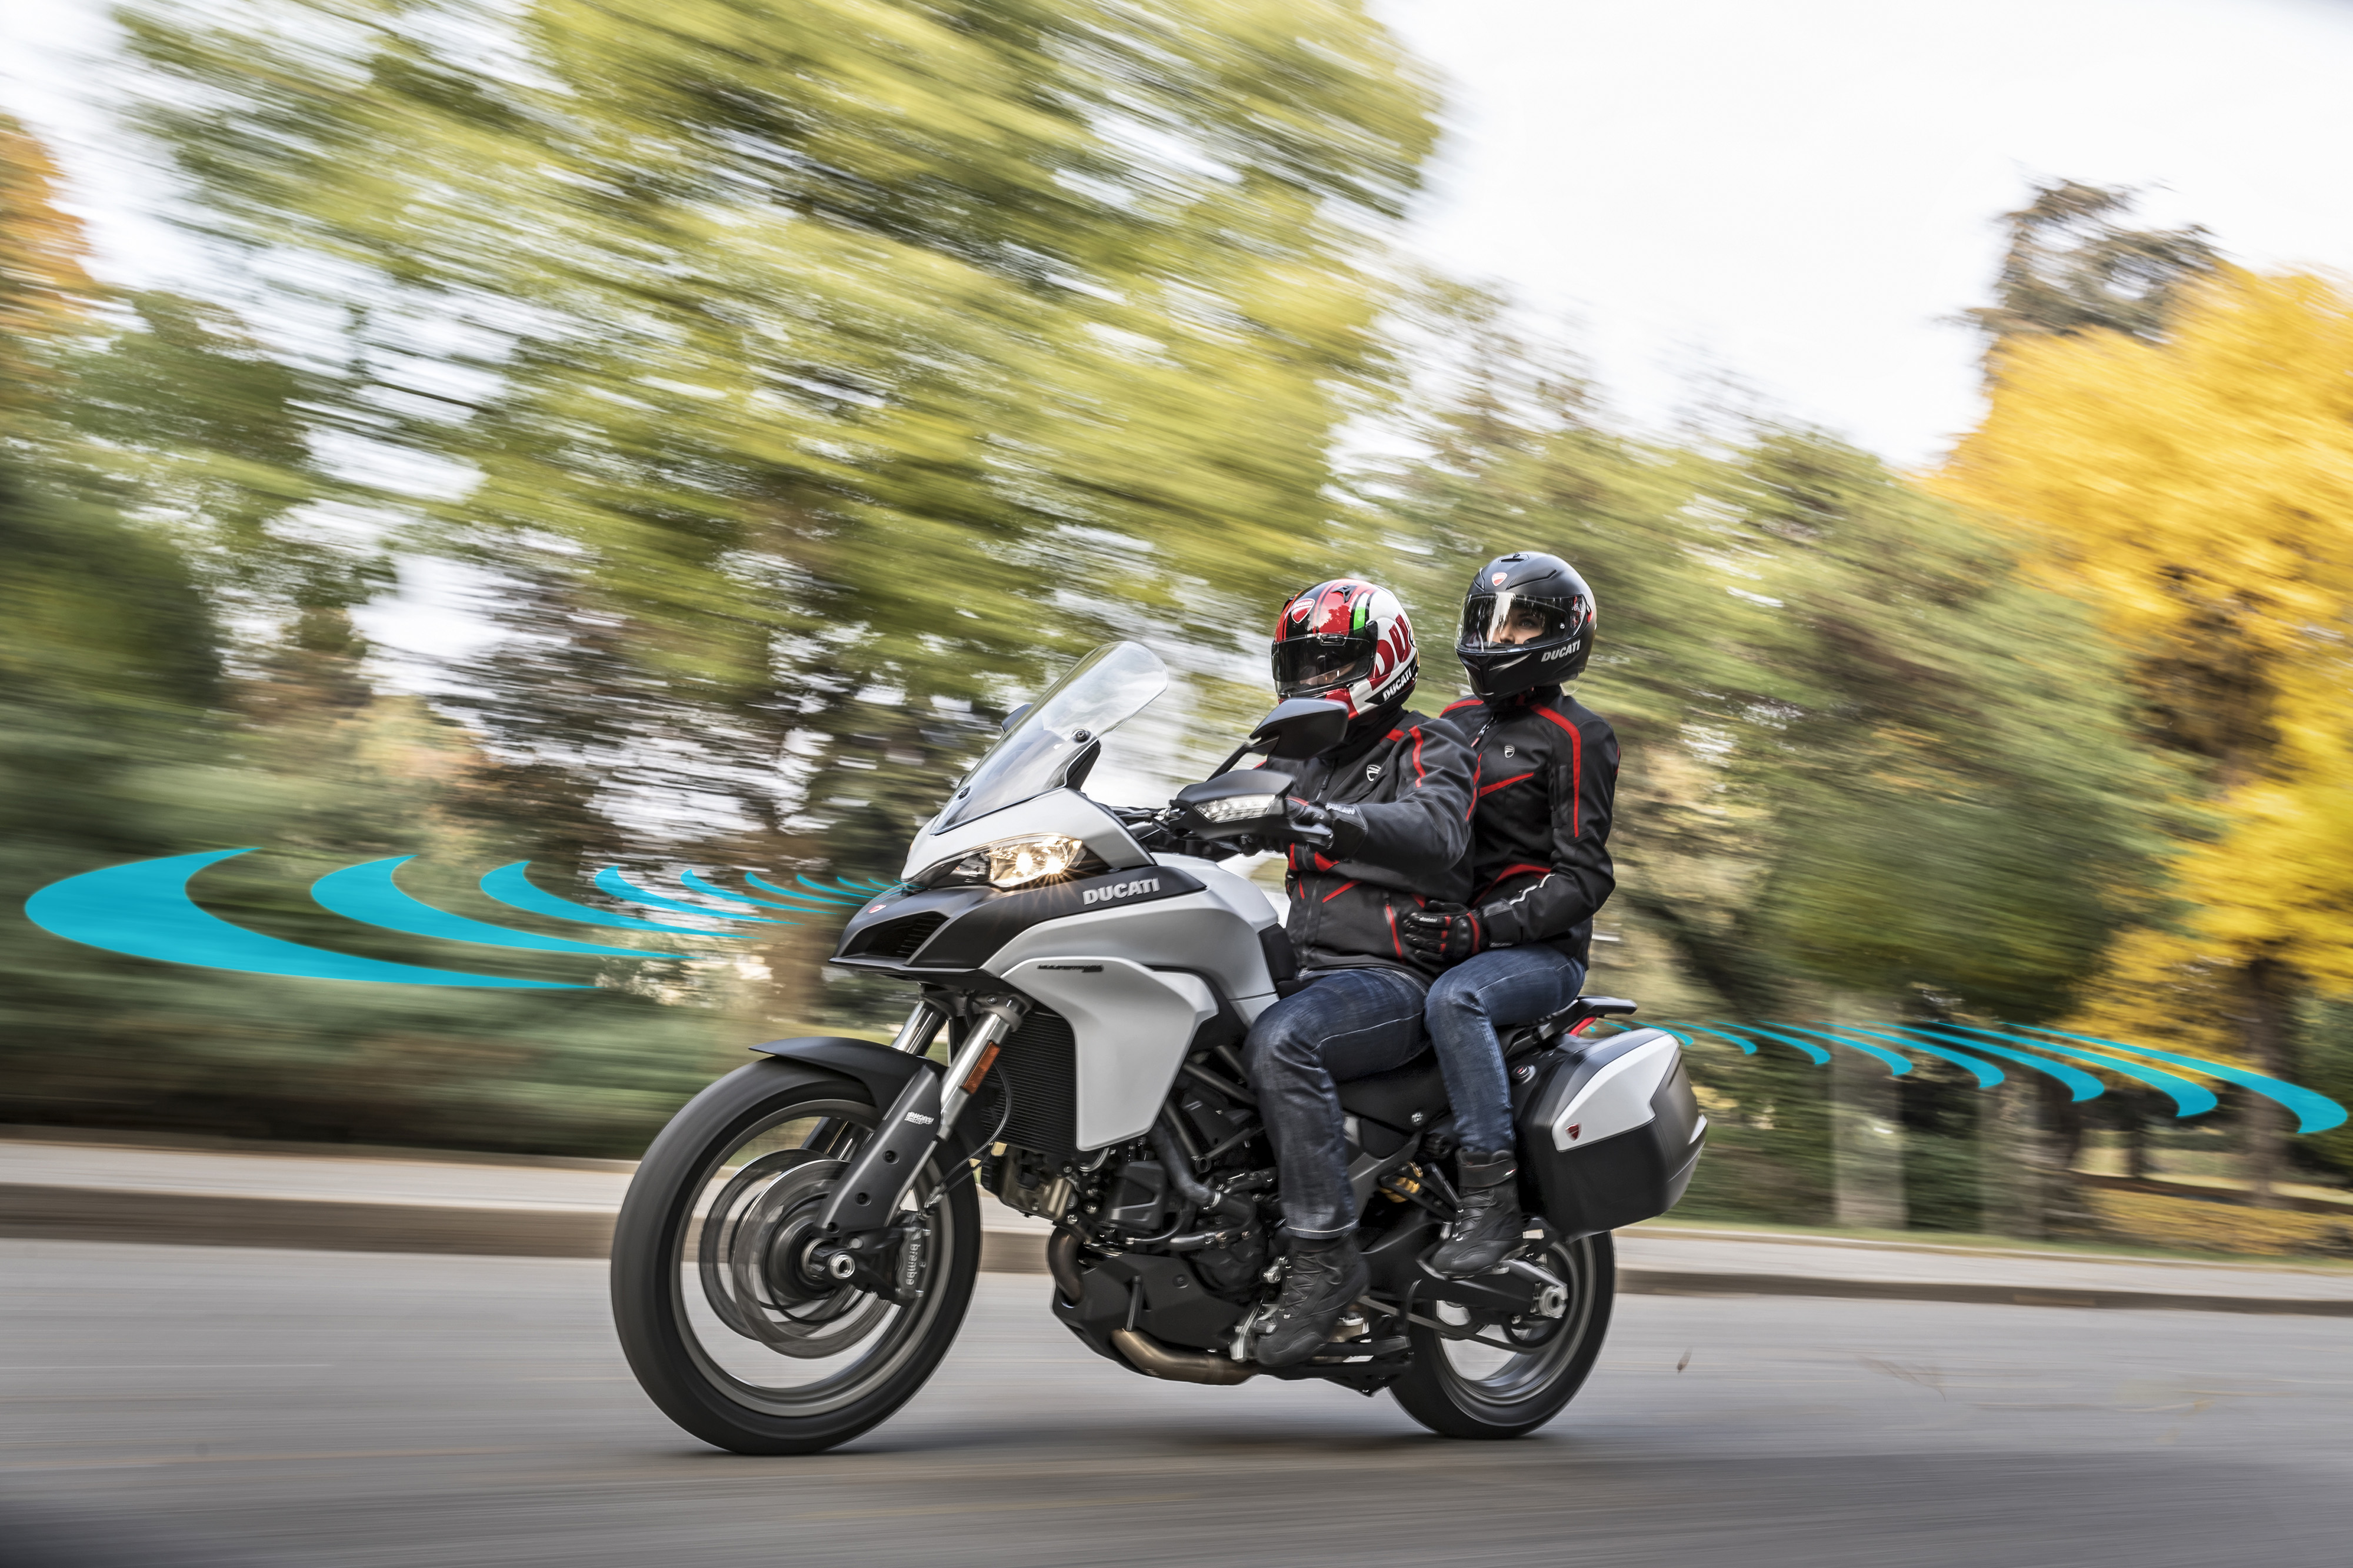 2018 DF Motor DF250RTS Specs Images and Pricing